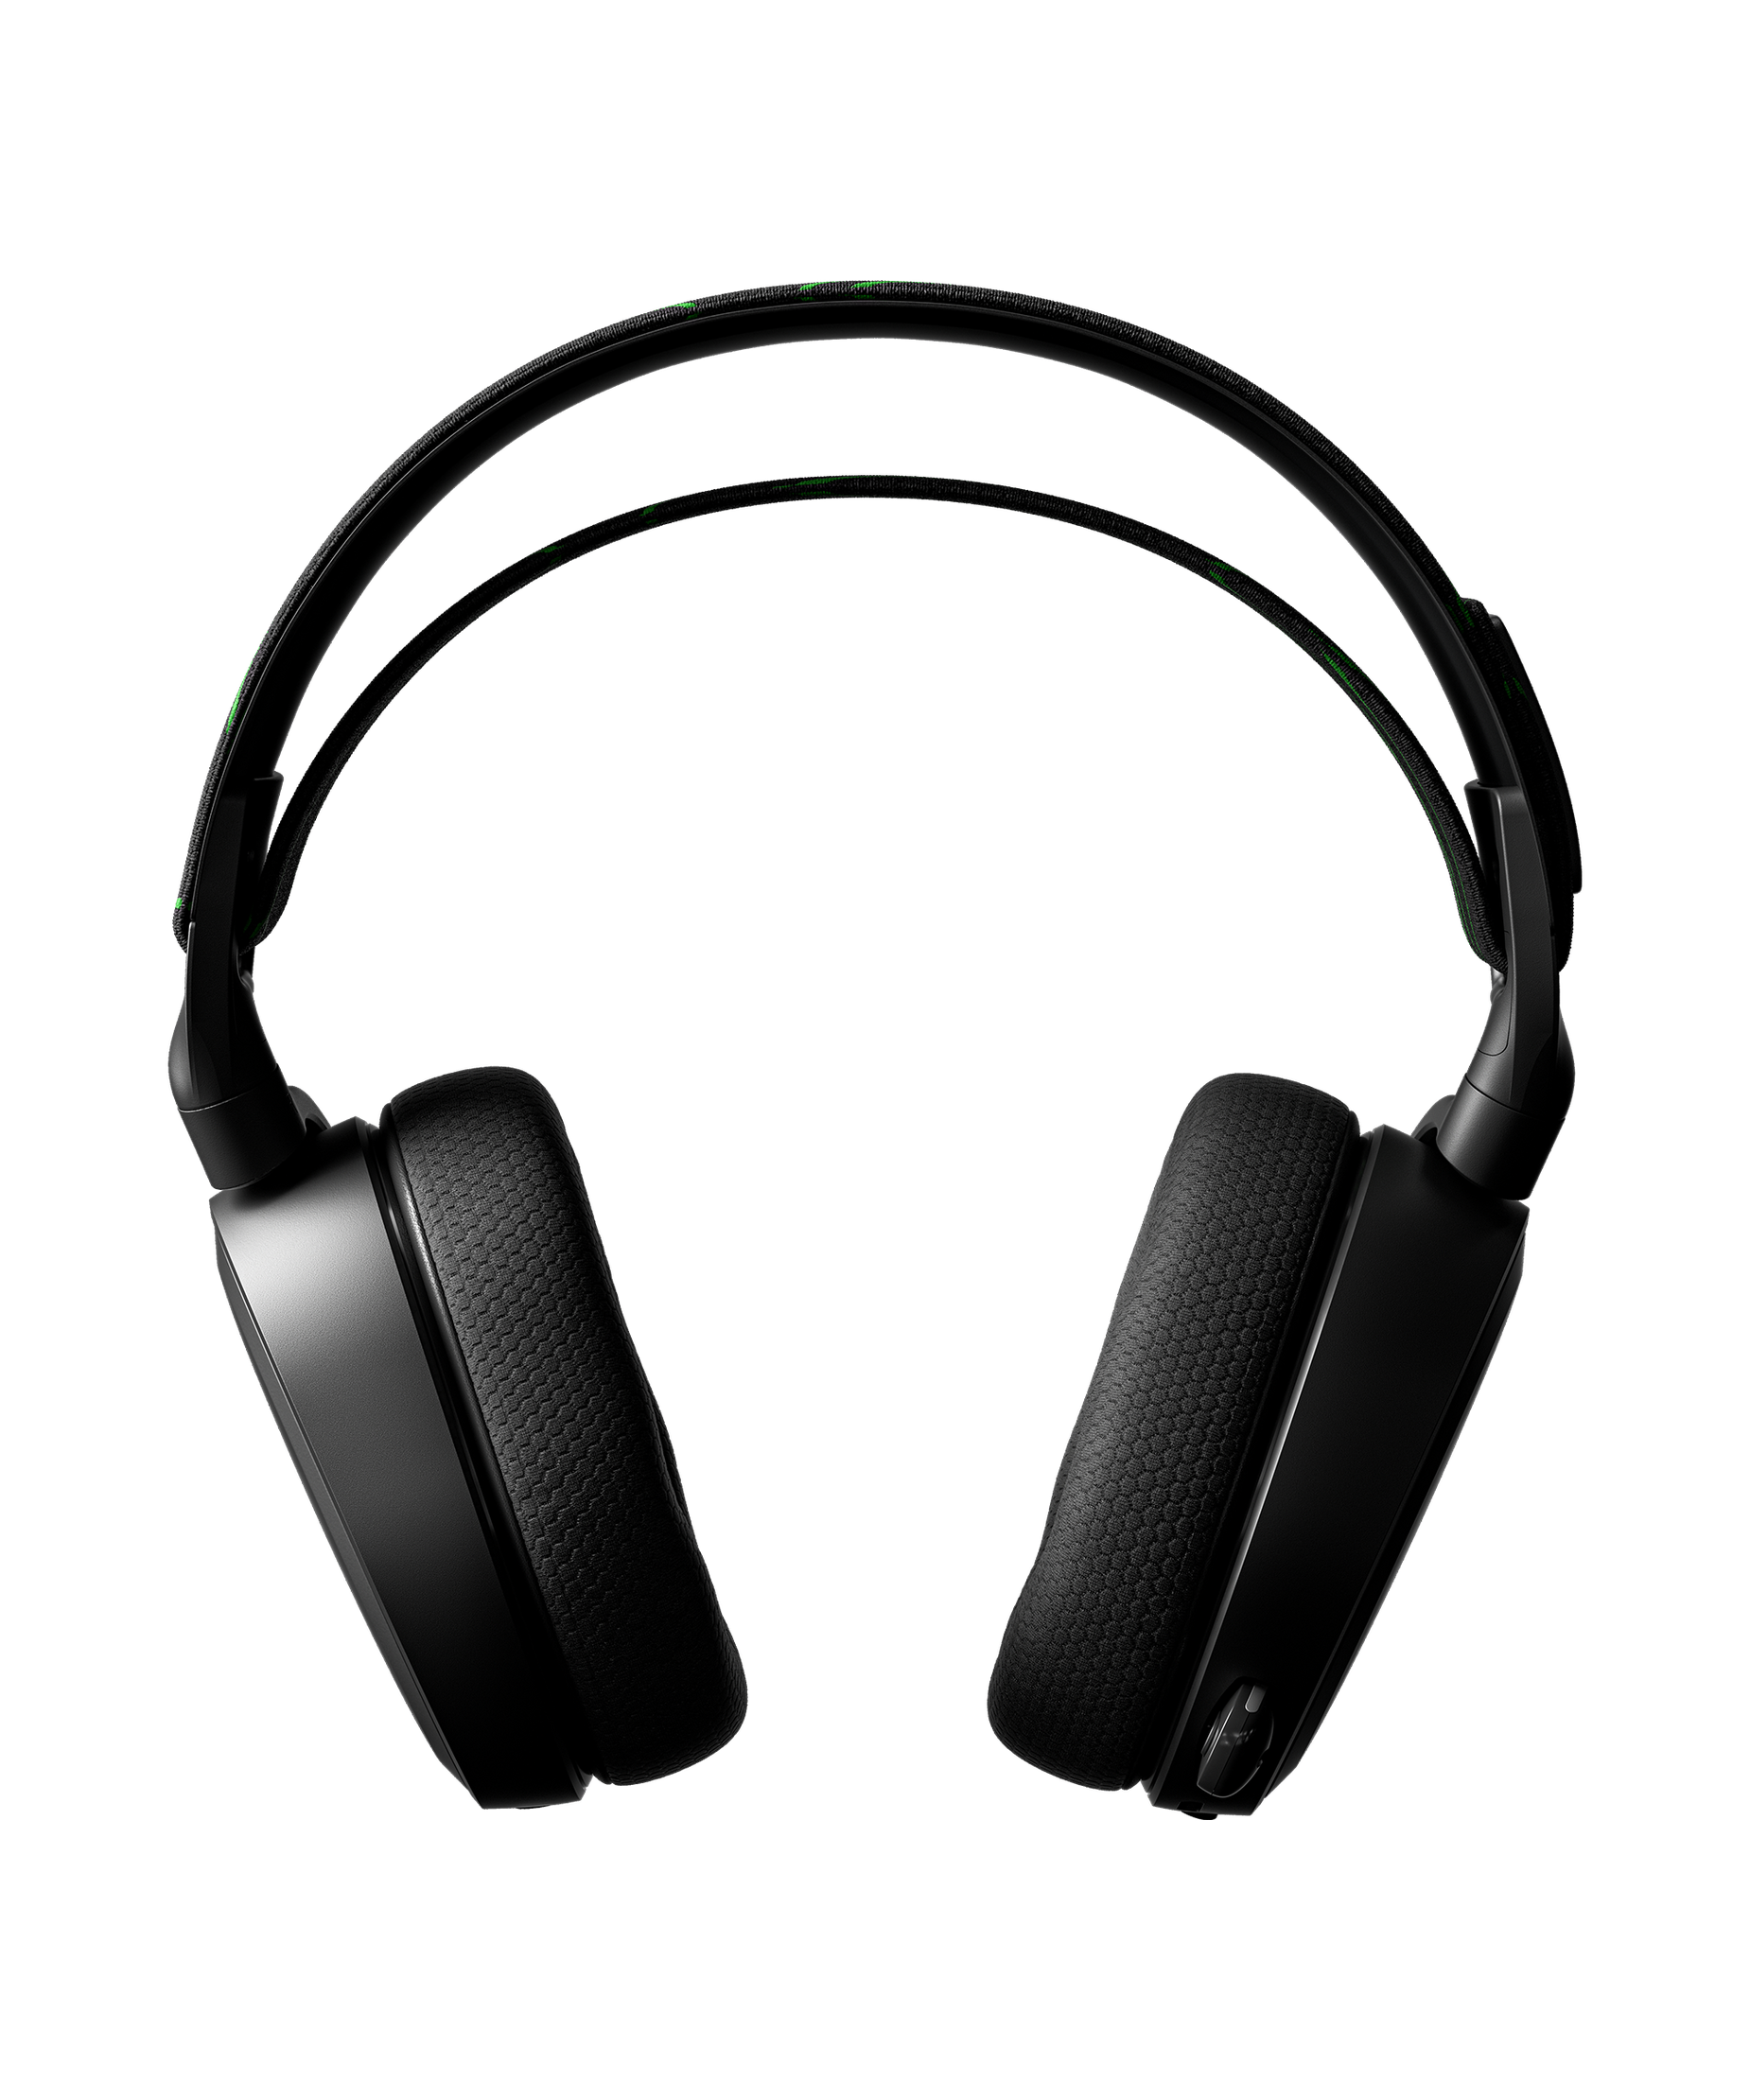 Headset rendered from front view to display both earcups and ski goggle band